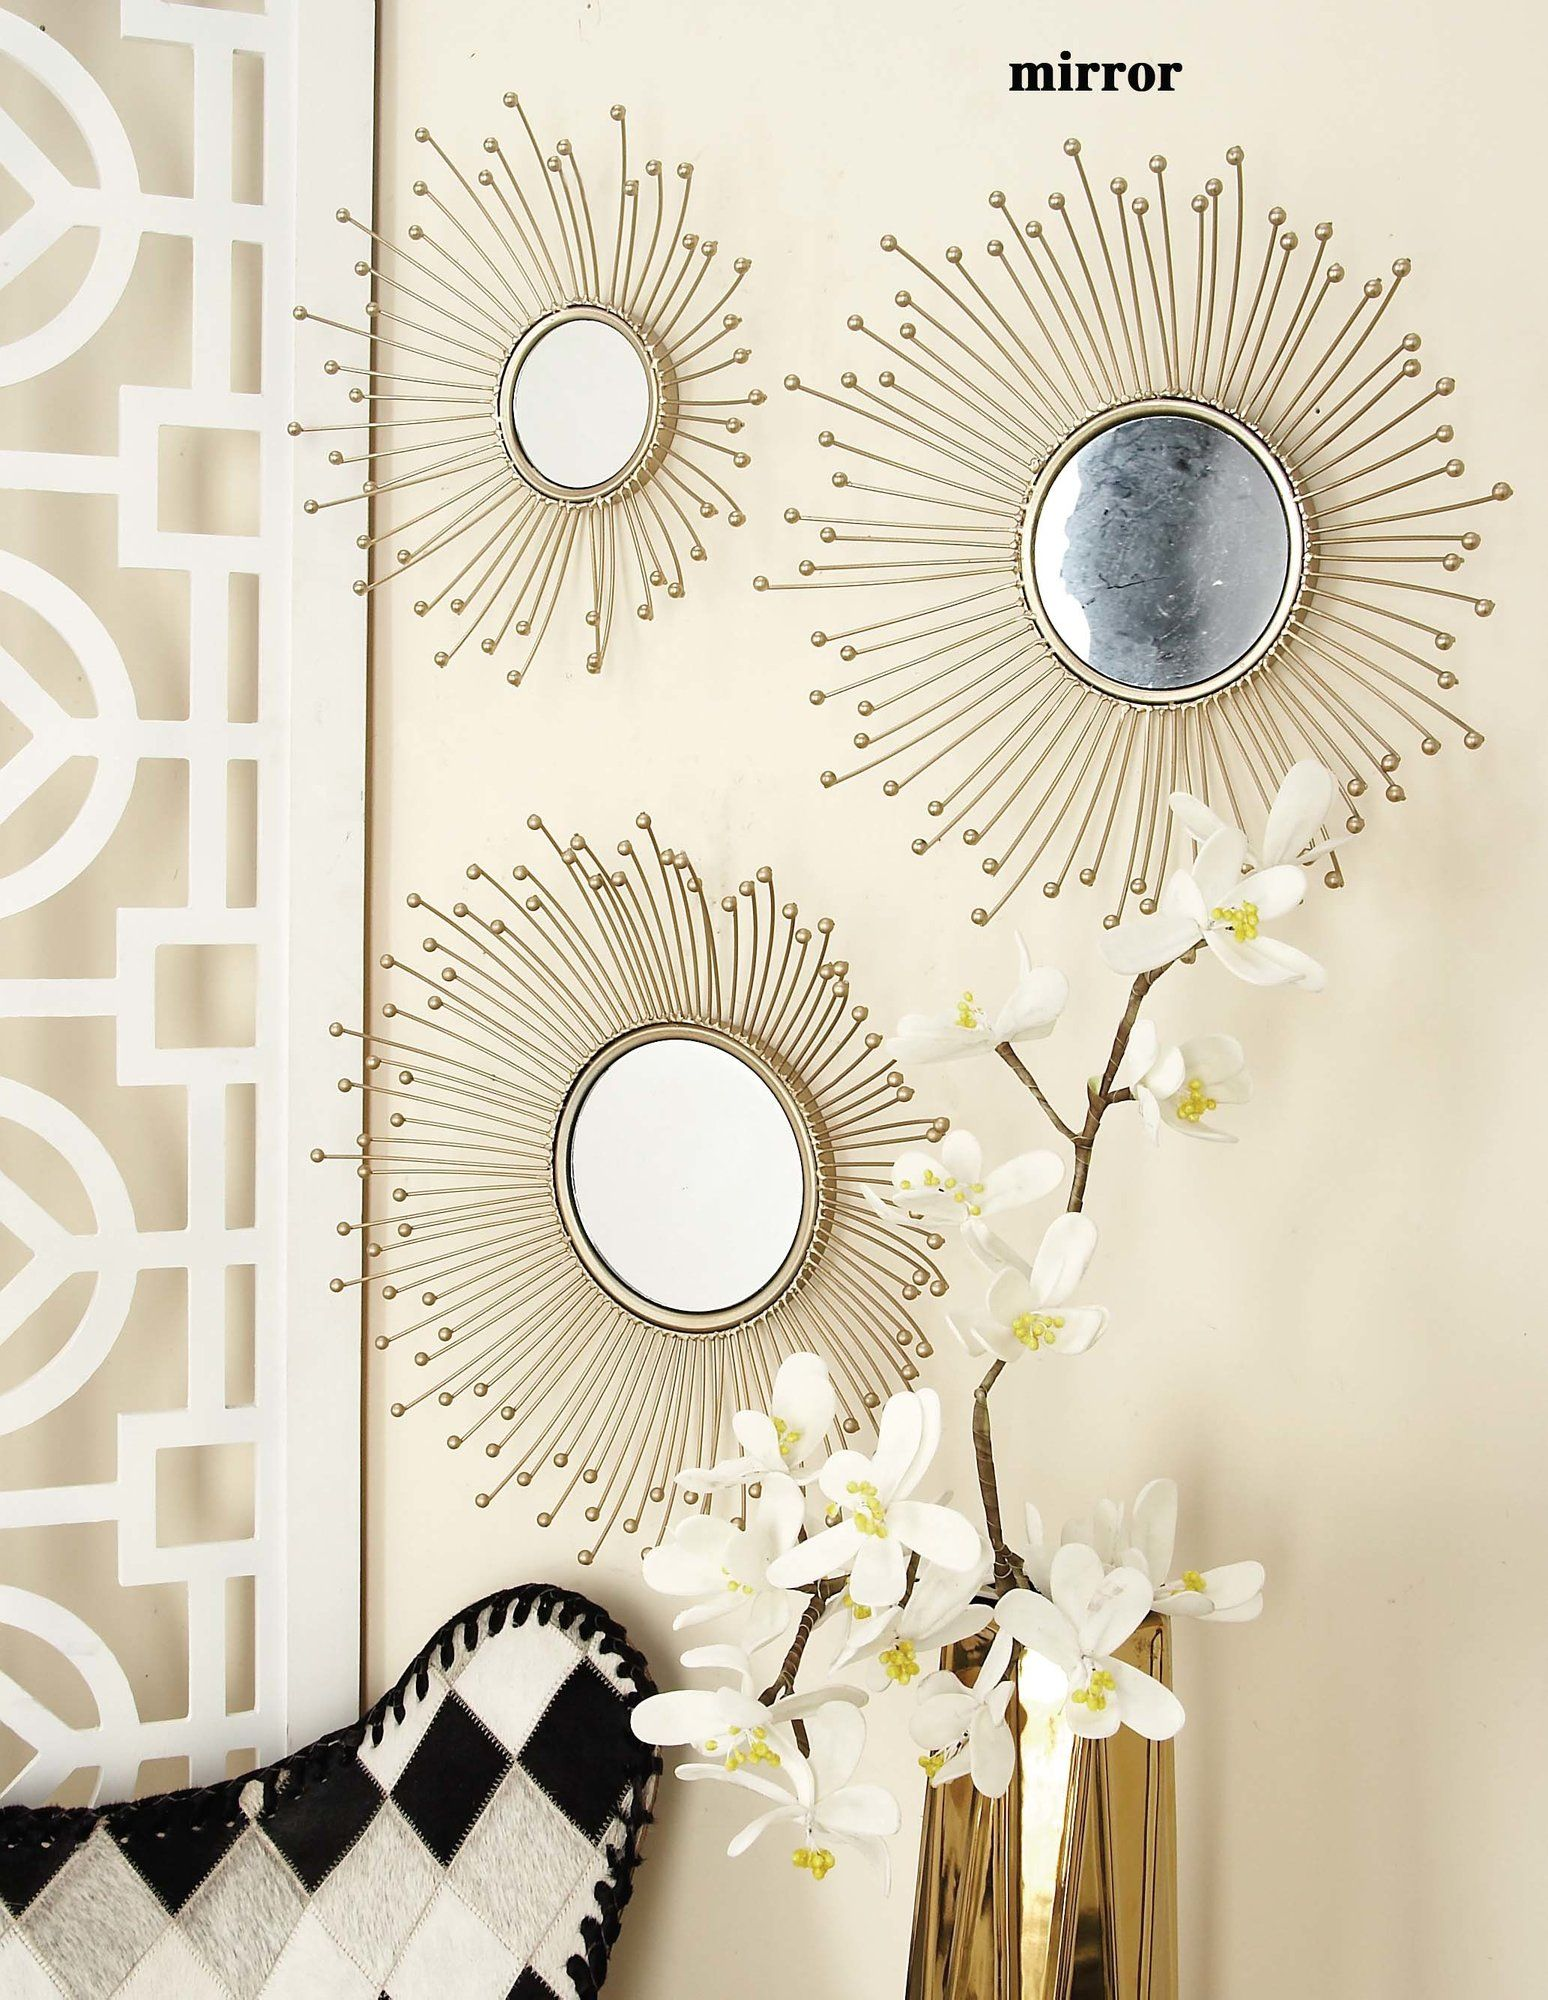 3 Piece Wall Mirror Set Mirrors Wall Mirrors Set Mirror Round